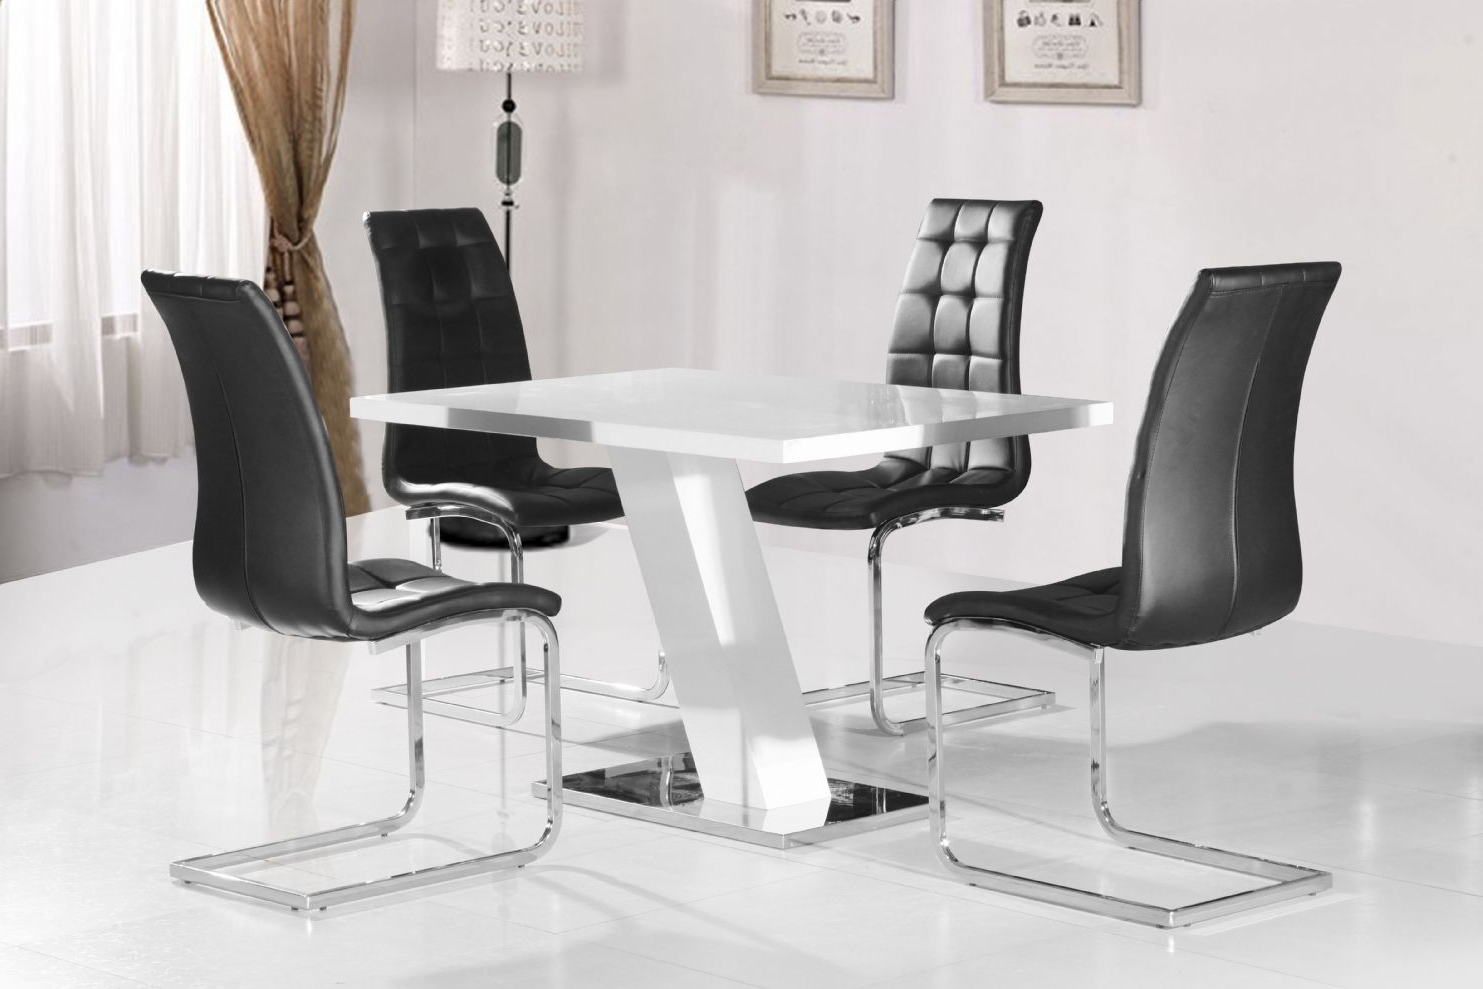 White Gloss Dining Tables 120Cm With Regard To Most Recently Released Grazia White High Gloss Contemporary Designer 120 Cm Compact Dining (View 22 of 25)